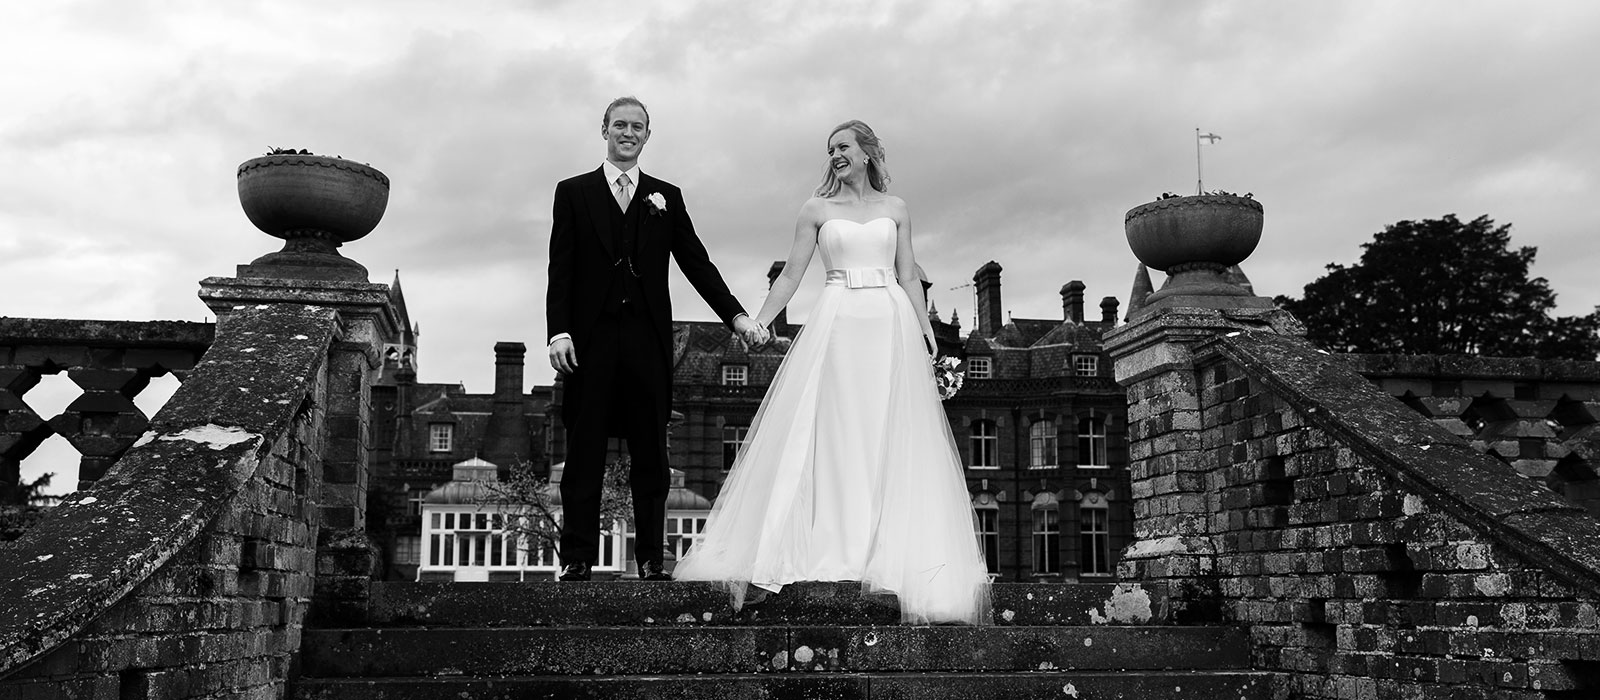 Elvetham Winter Wedding | Maddie & Daniel